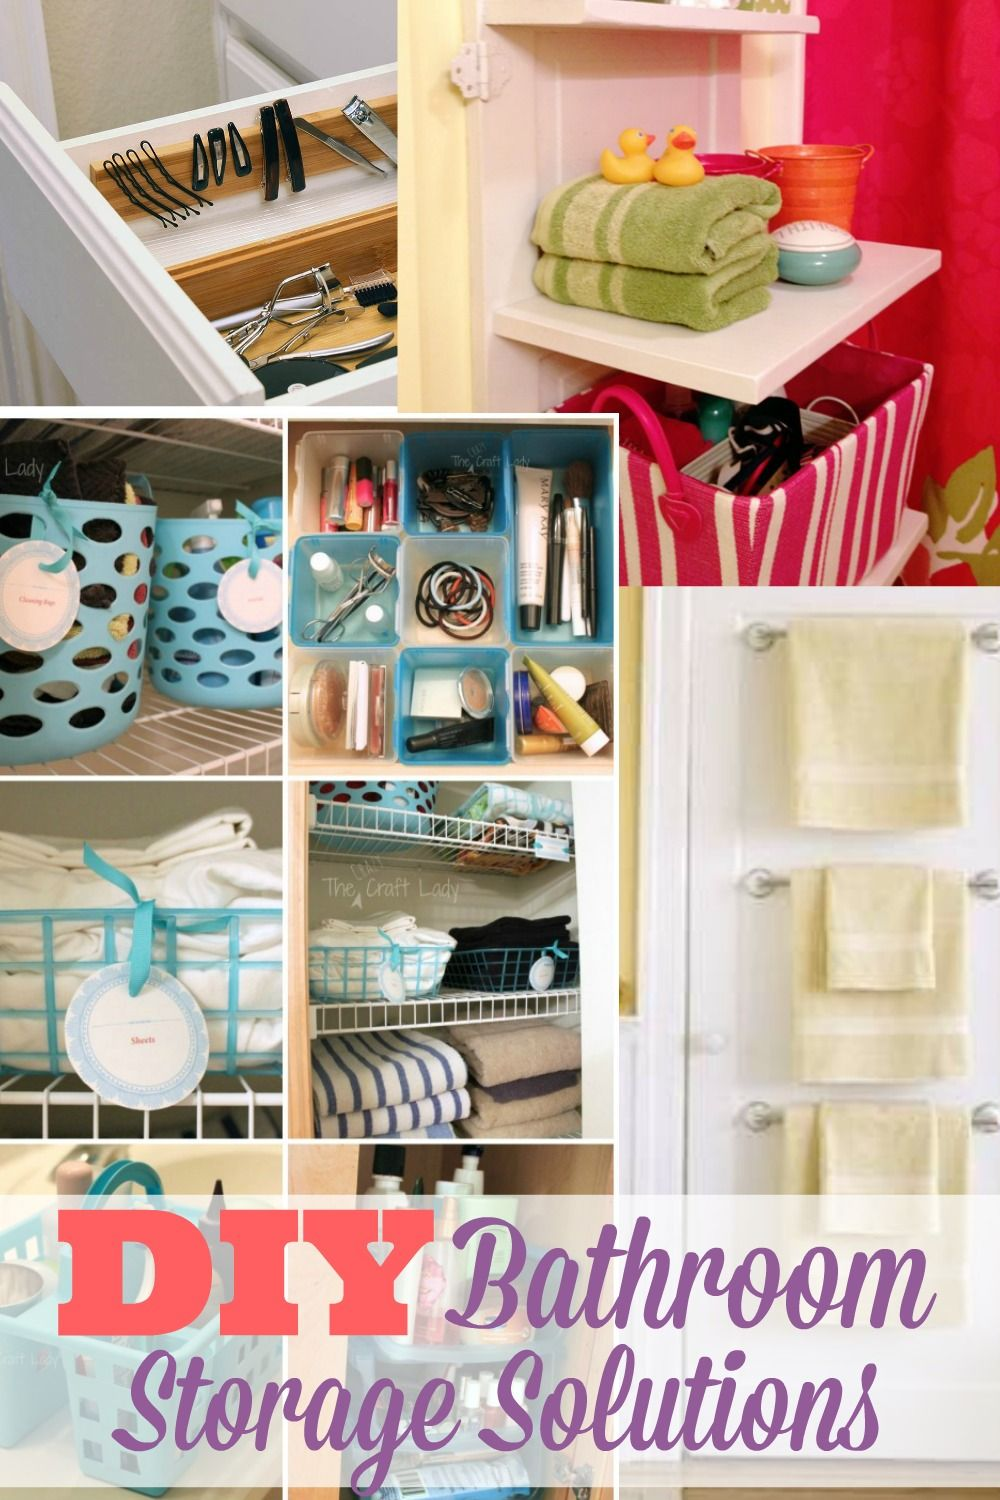 10 Easy DIY Bathroom Organization Ideas | Bathroom storage ...